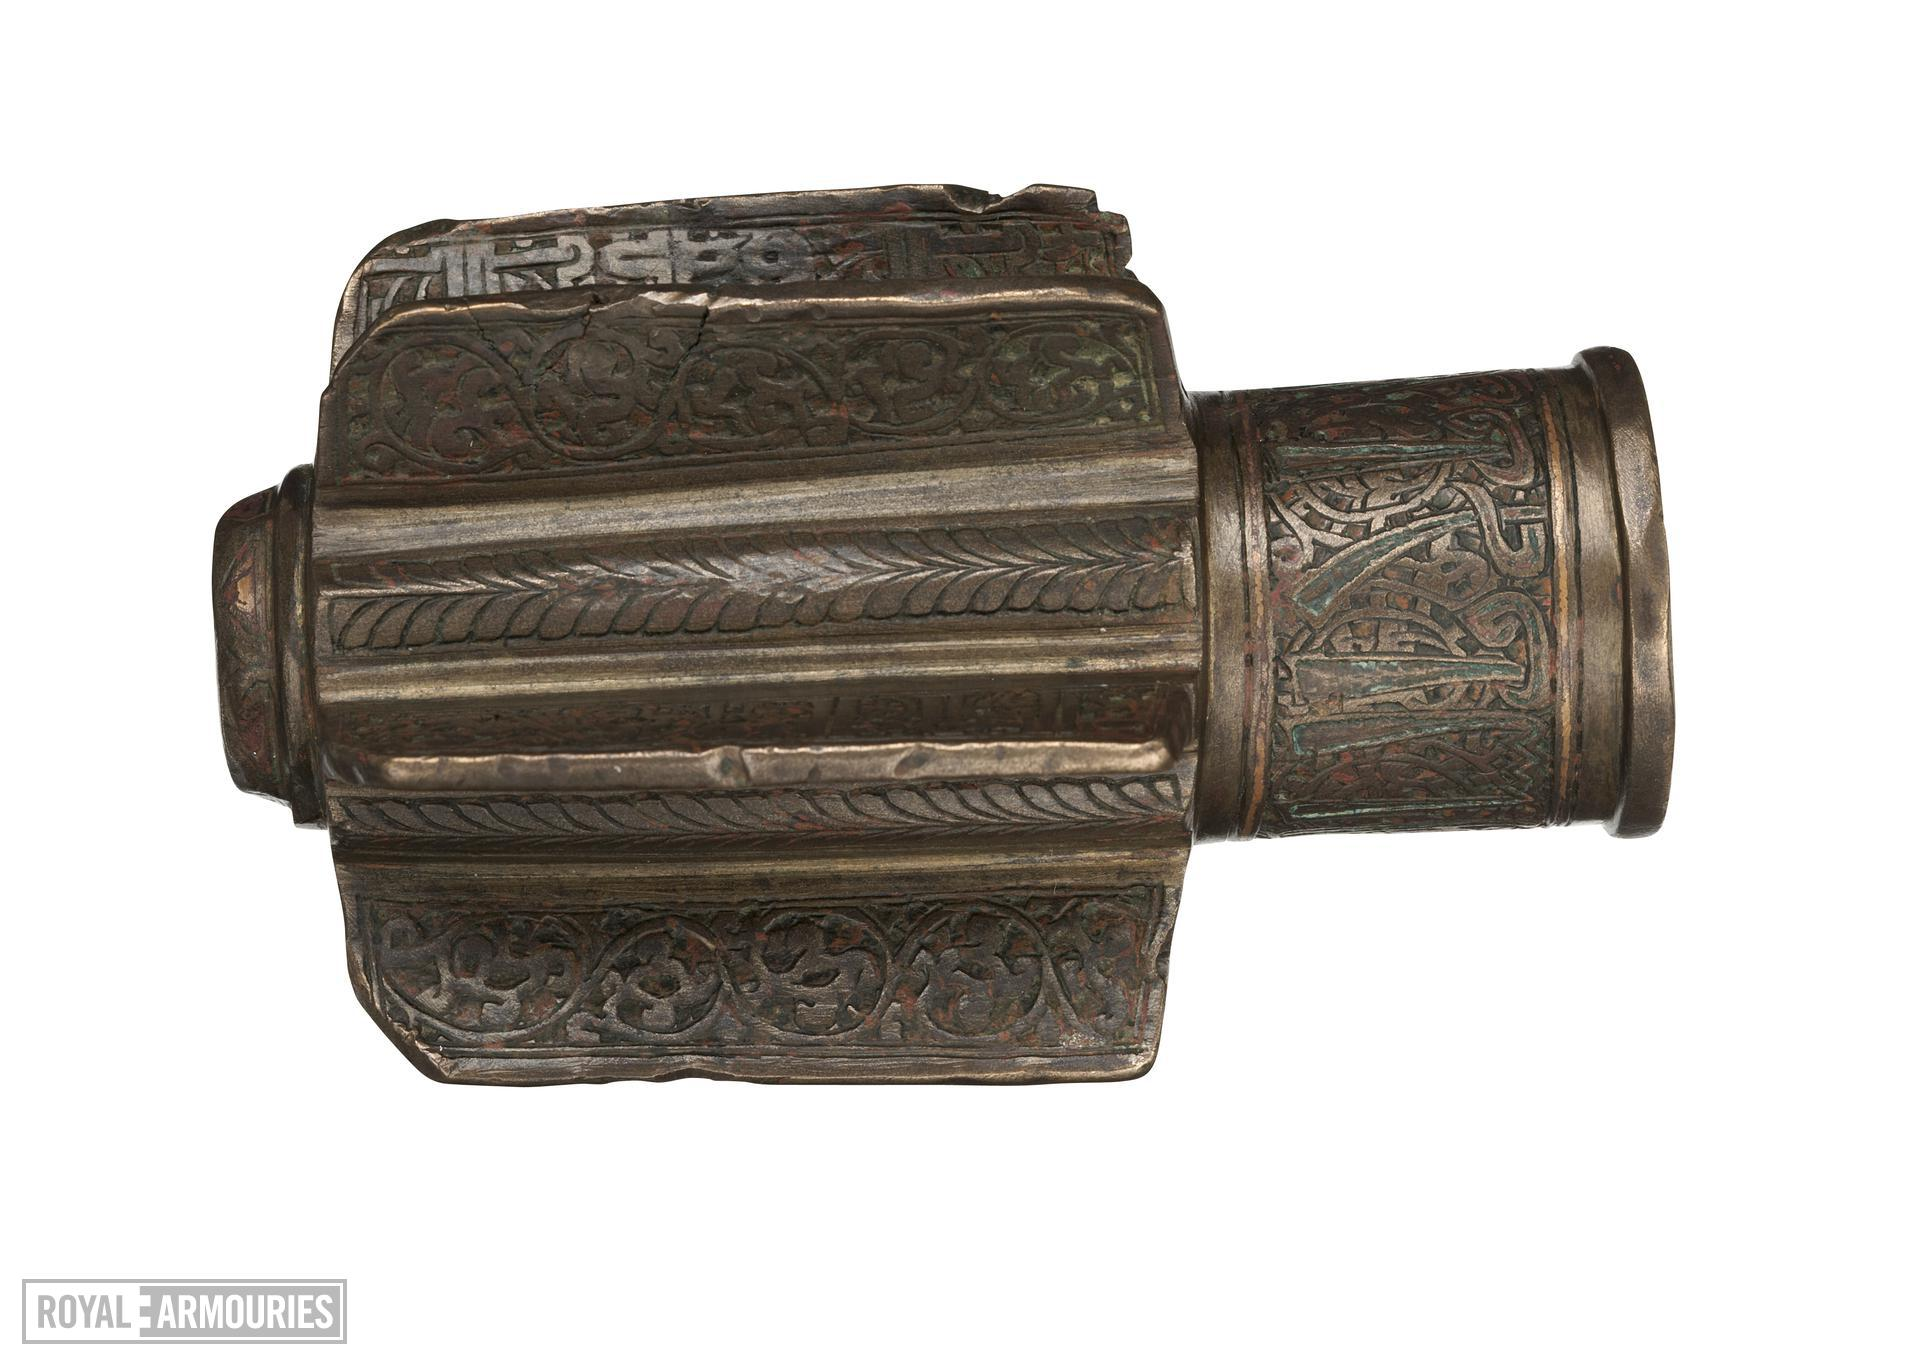 Mace Head cast hollow bronze body with six radial fins.